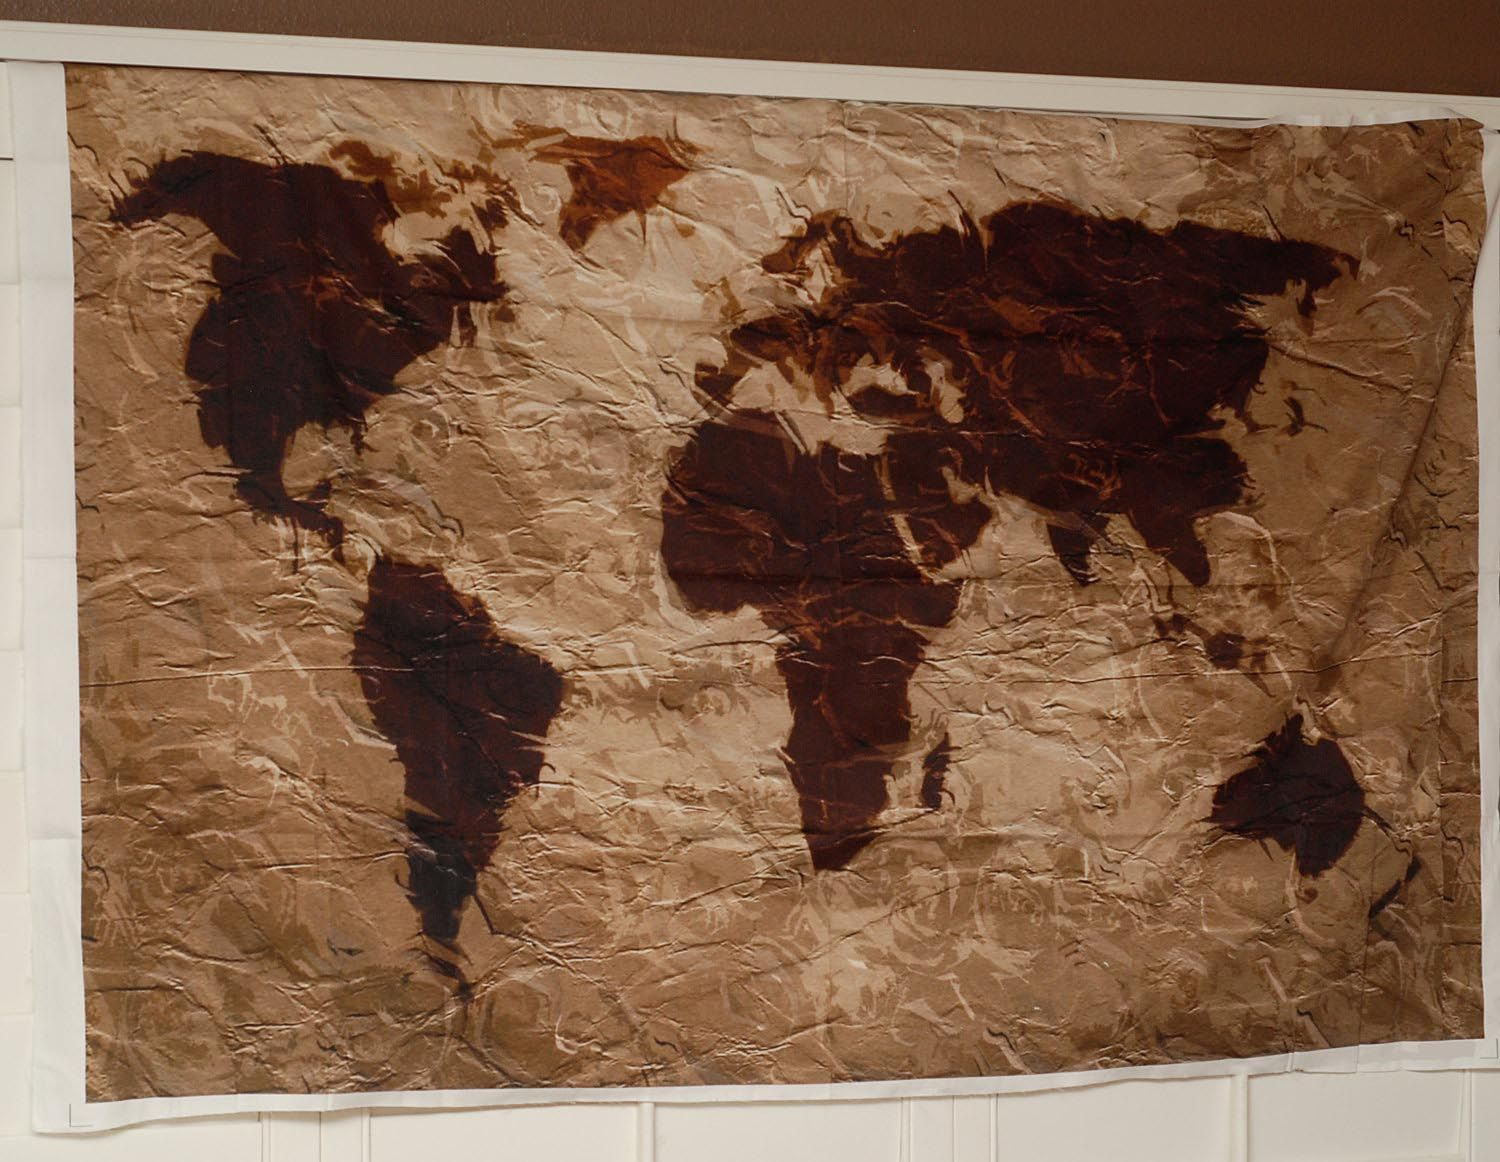 Antique World Map Tapestry.Antique World Map Tapestry Tapestries Pinterest Tapestry